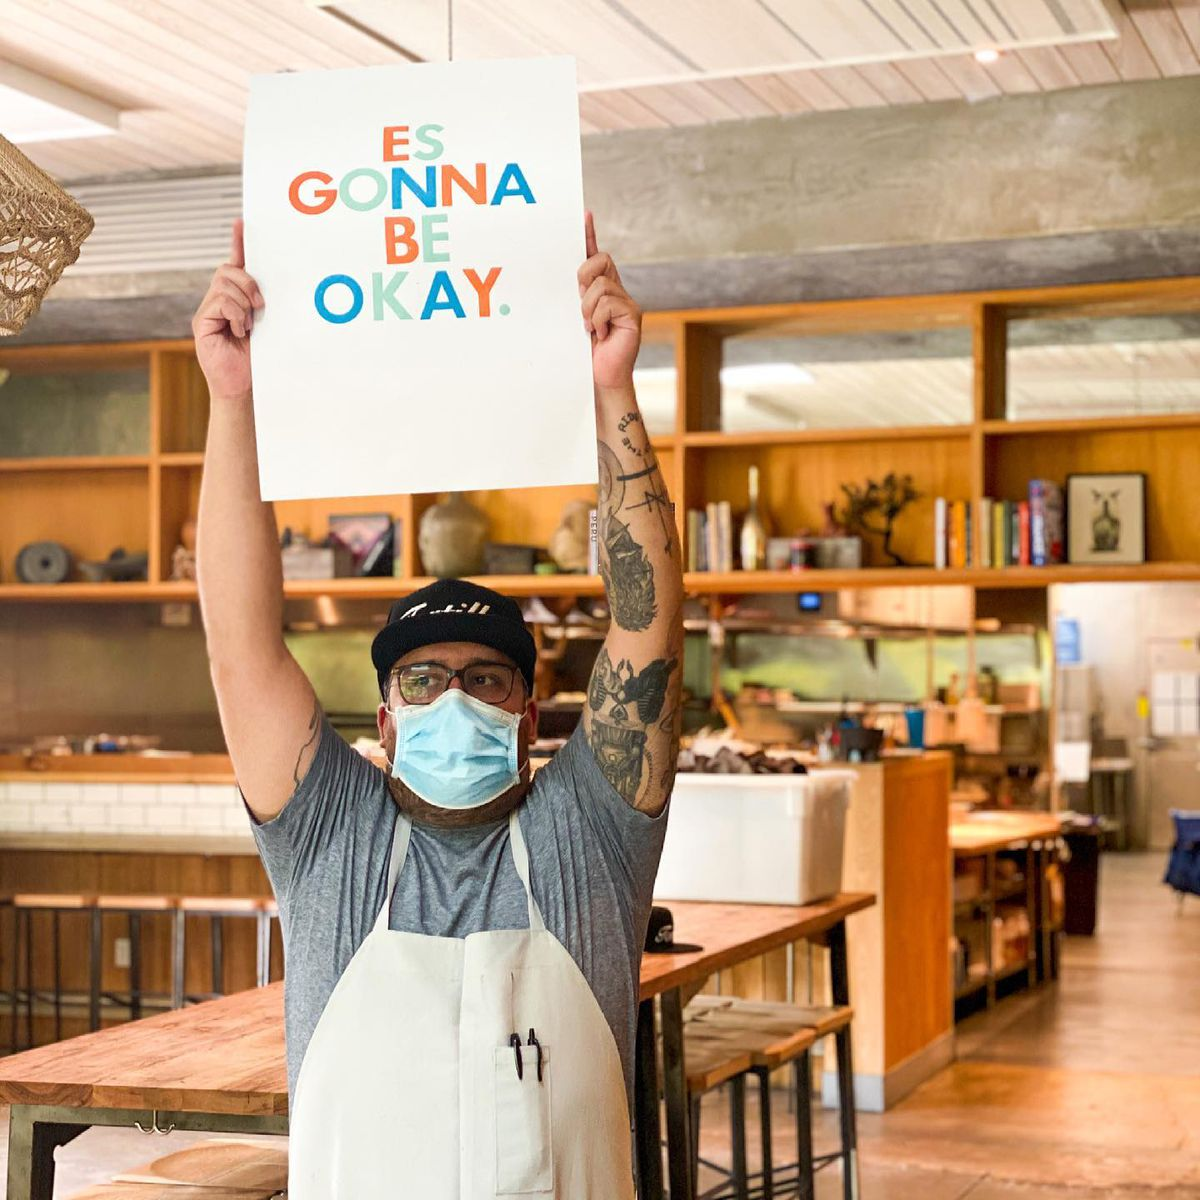 """A man in a facial mask and black hat and apron holding up a sign that reads: """"Es Gonna Be Okay"""" in a restaurant"""